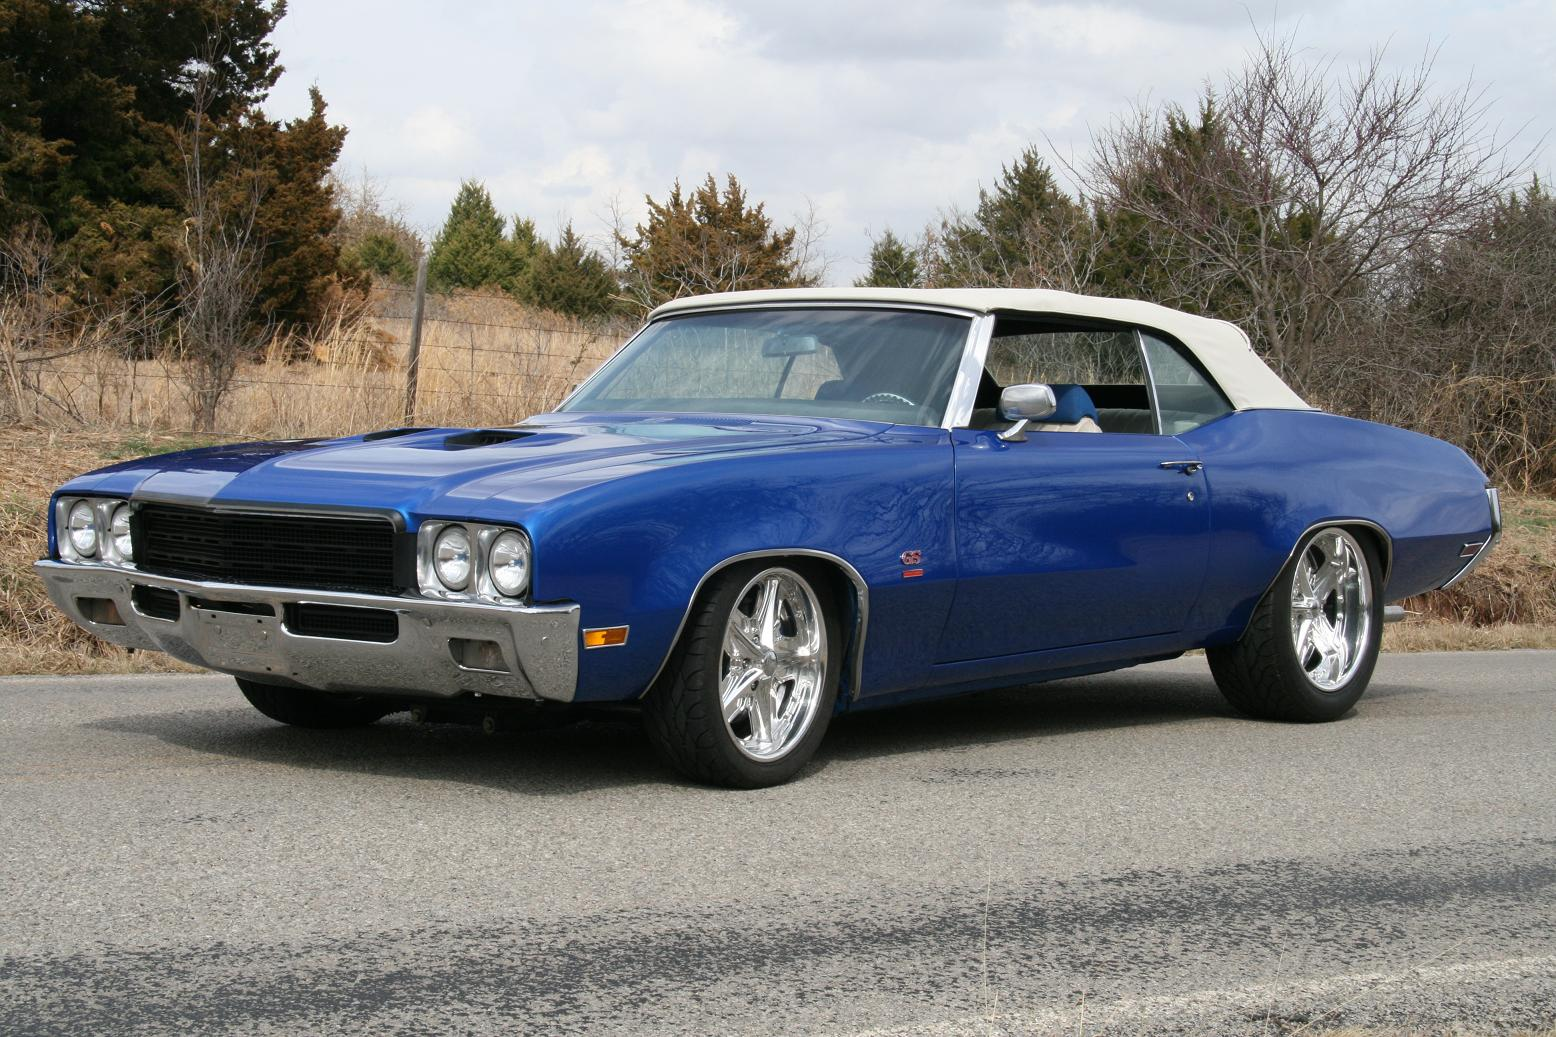 71 Buick GS